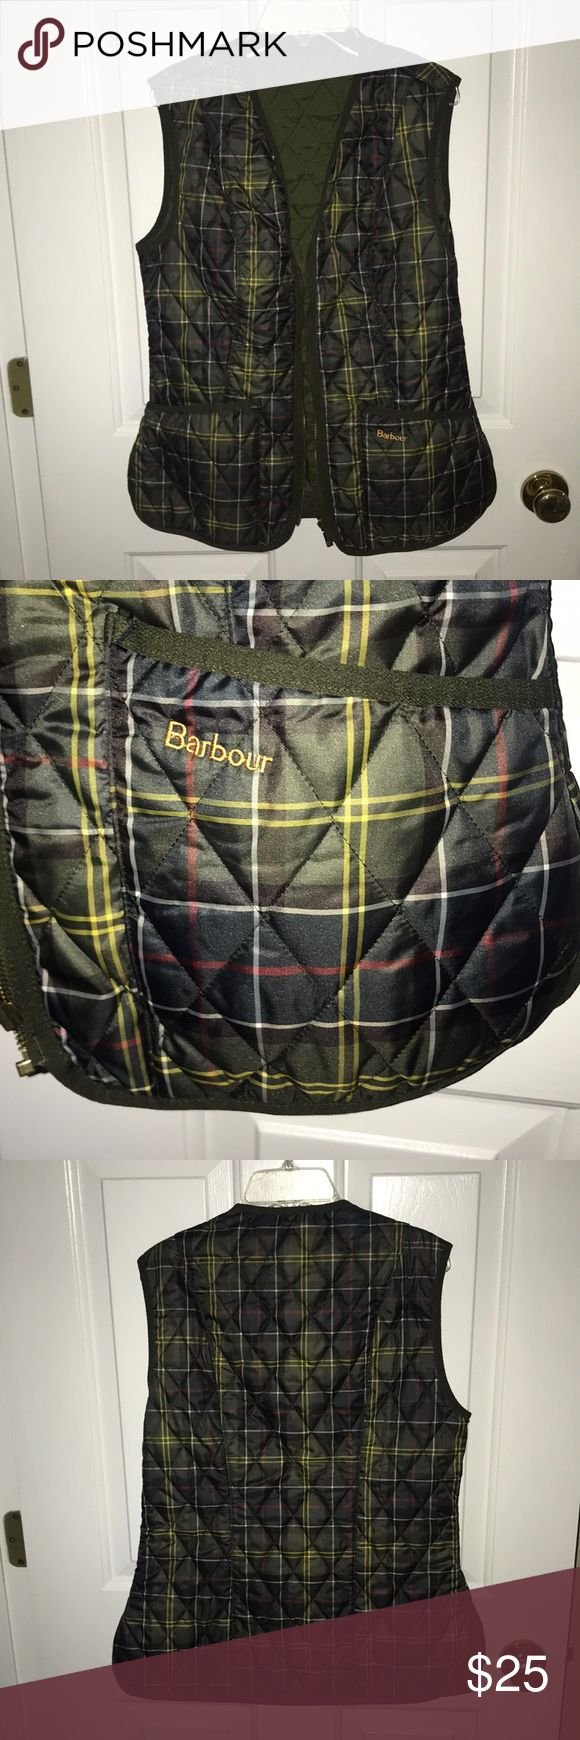 Barbour vest can be zipped in to a barbour jacket for extra warmth or can be worn alone! never been worn, perfect condition! Barbour Jackets & Coats Vests